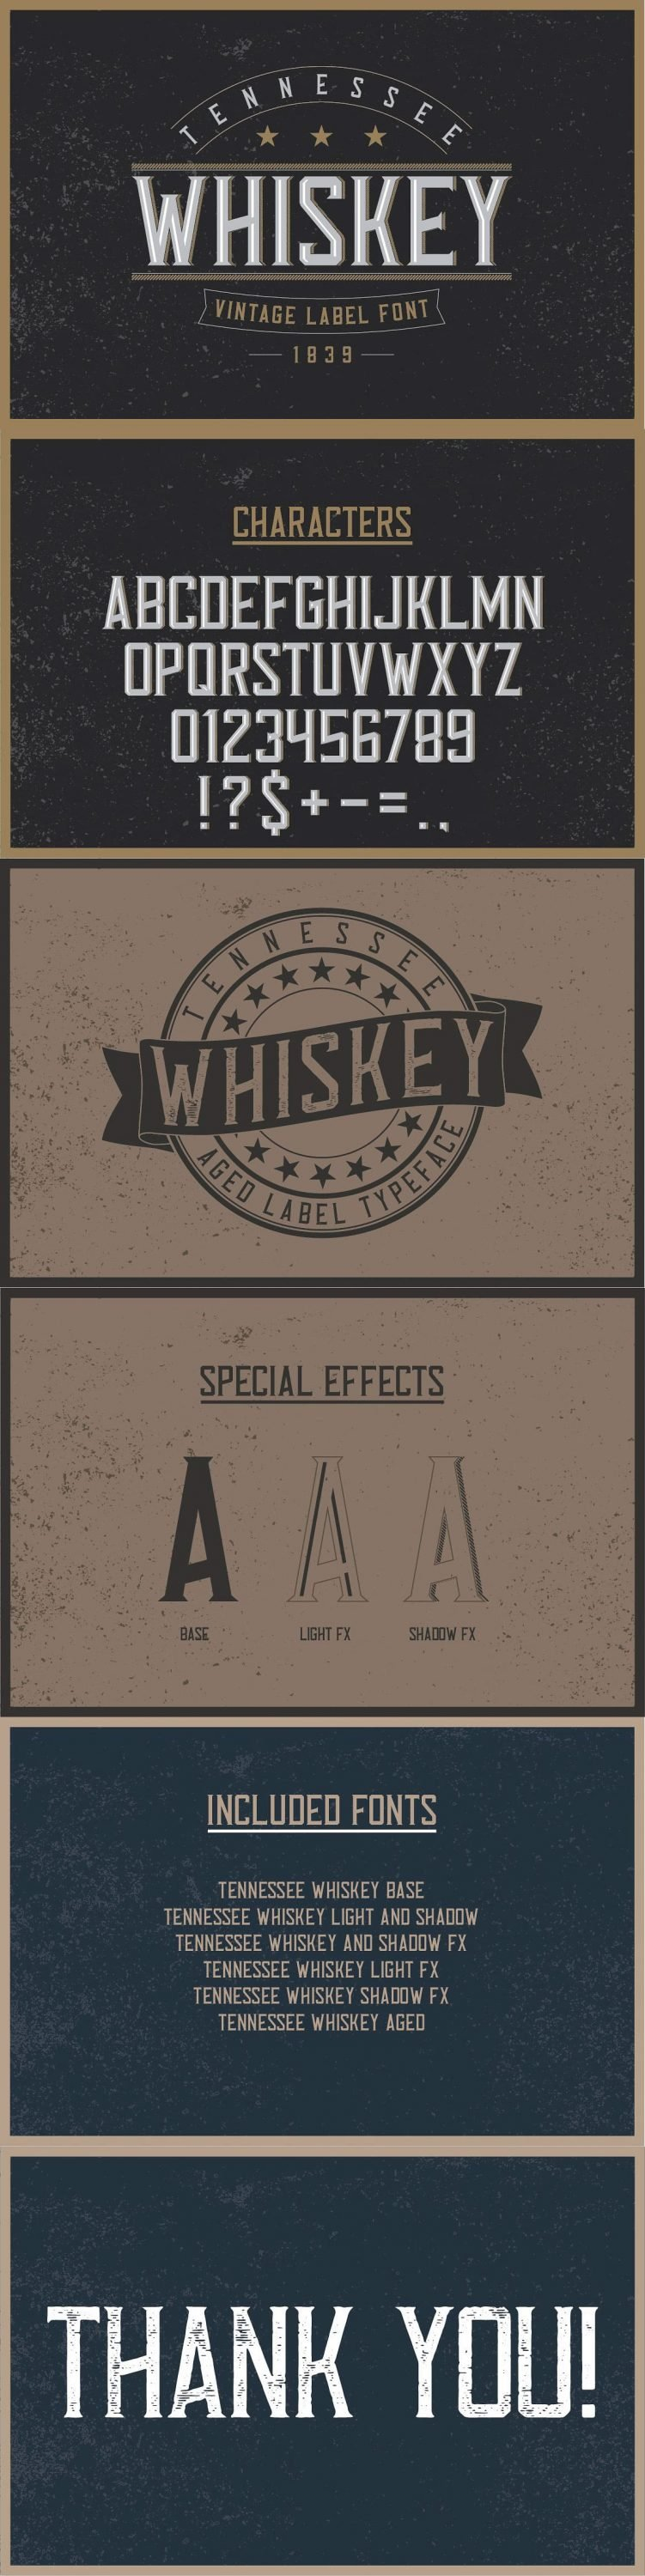 Tennessee Whiskey Font for pinterest.